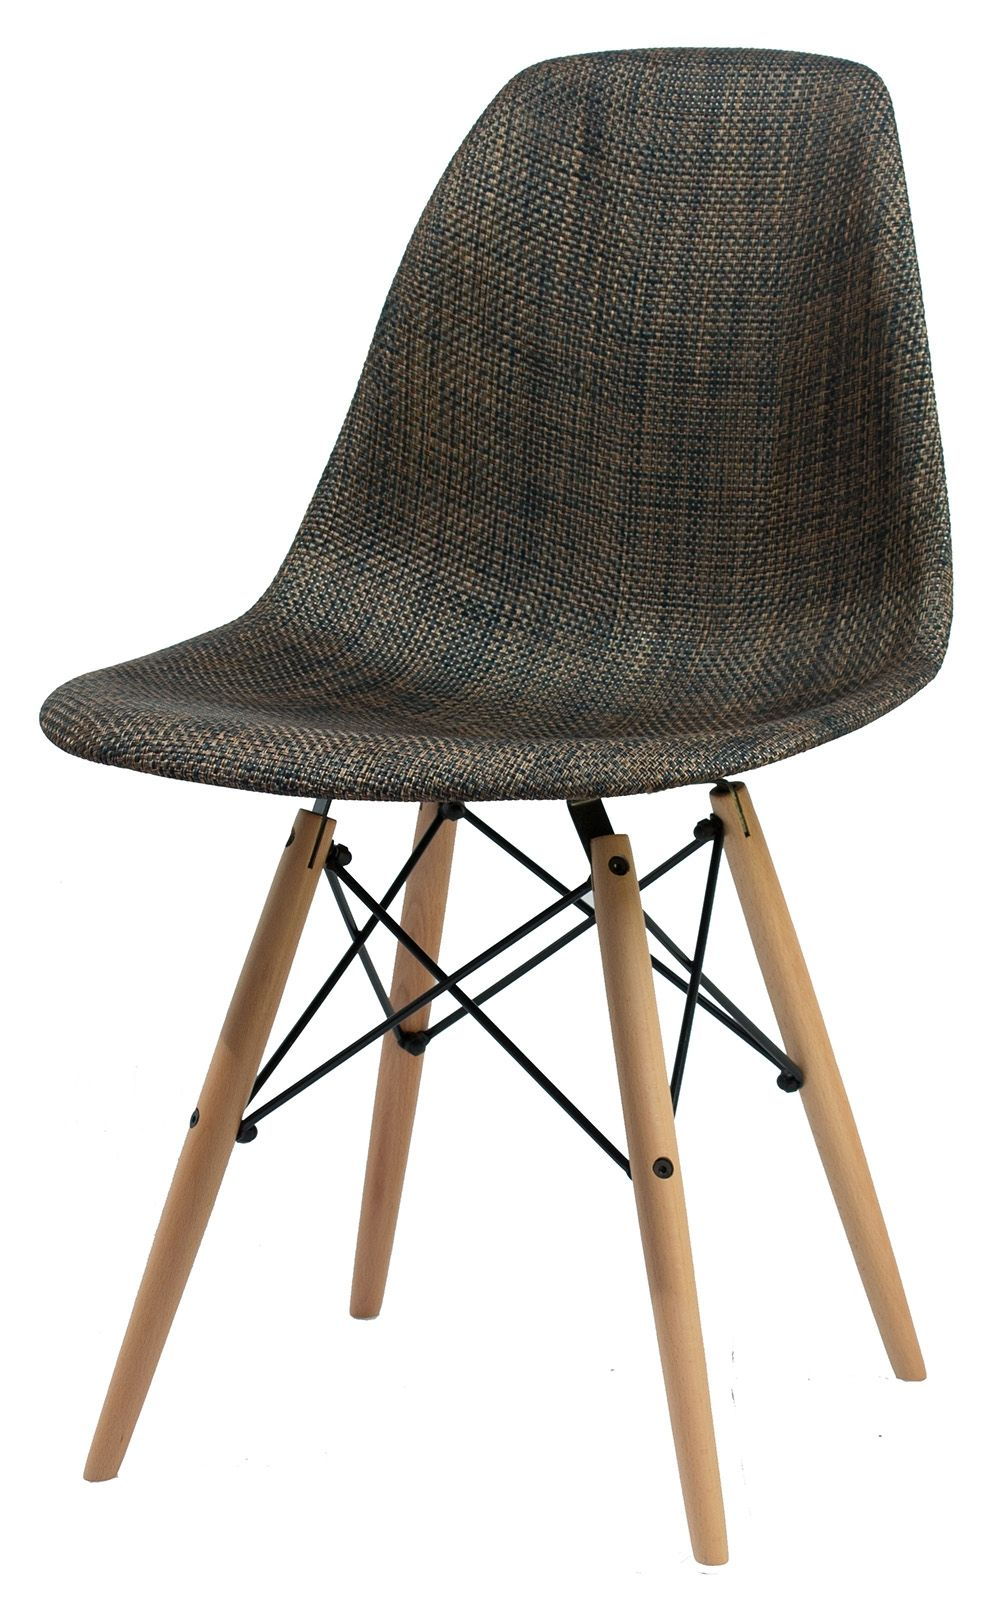 Chaise DSW coco Charles Eames Chaises design Meubles